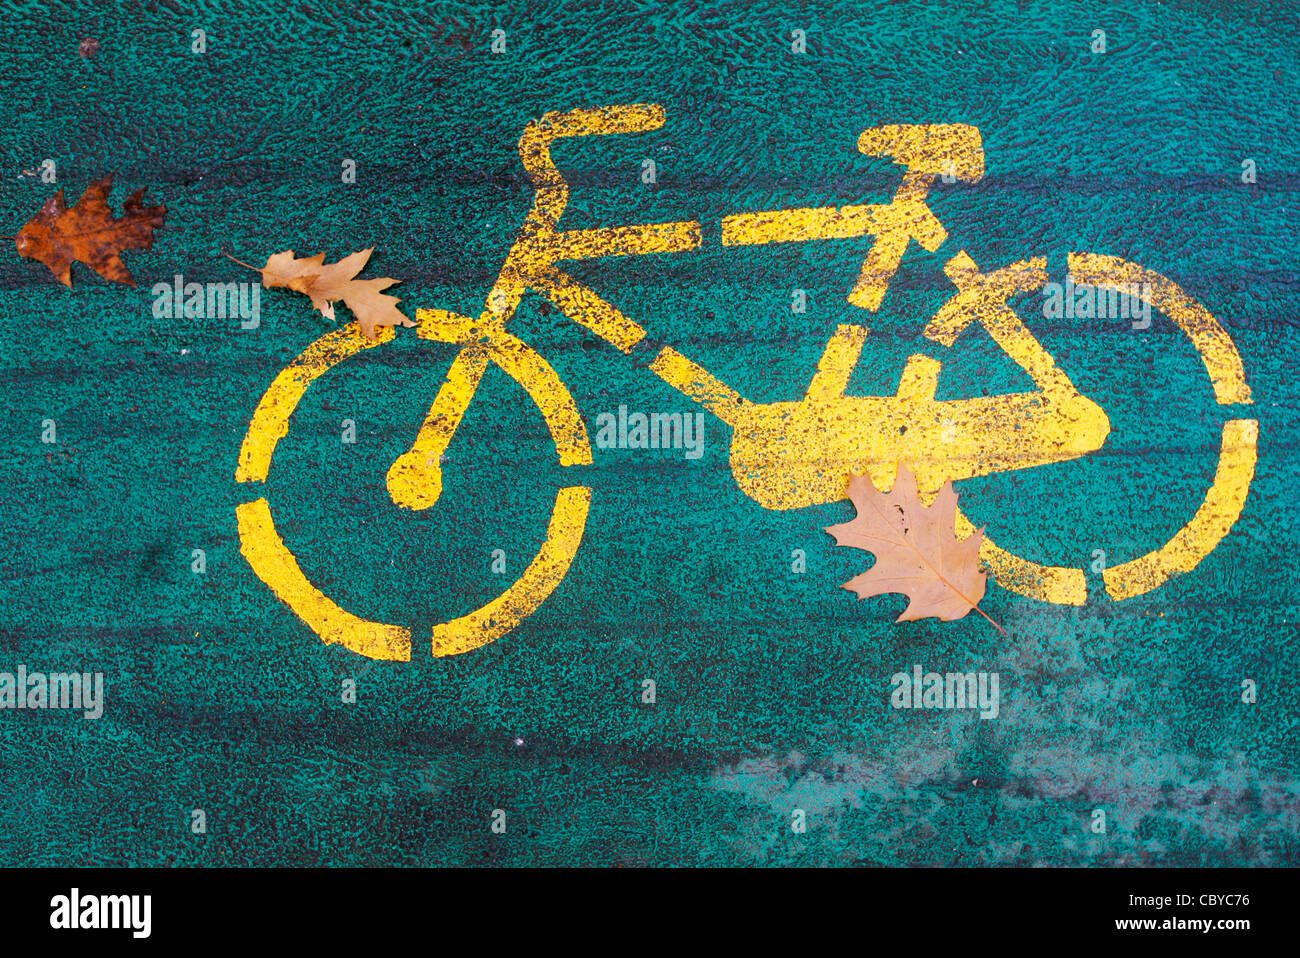 Detail of a bicycle lane in a park with autumn leaves Stock Photo